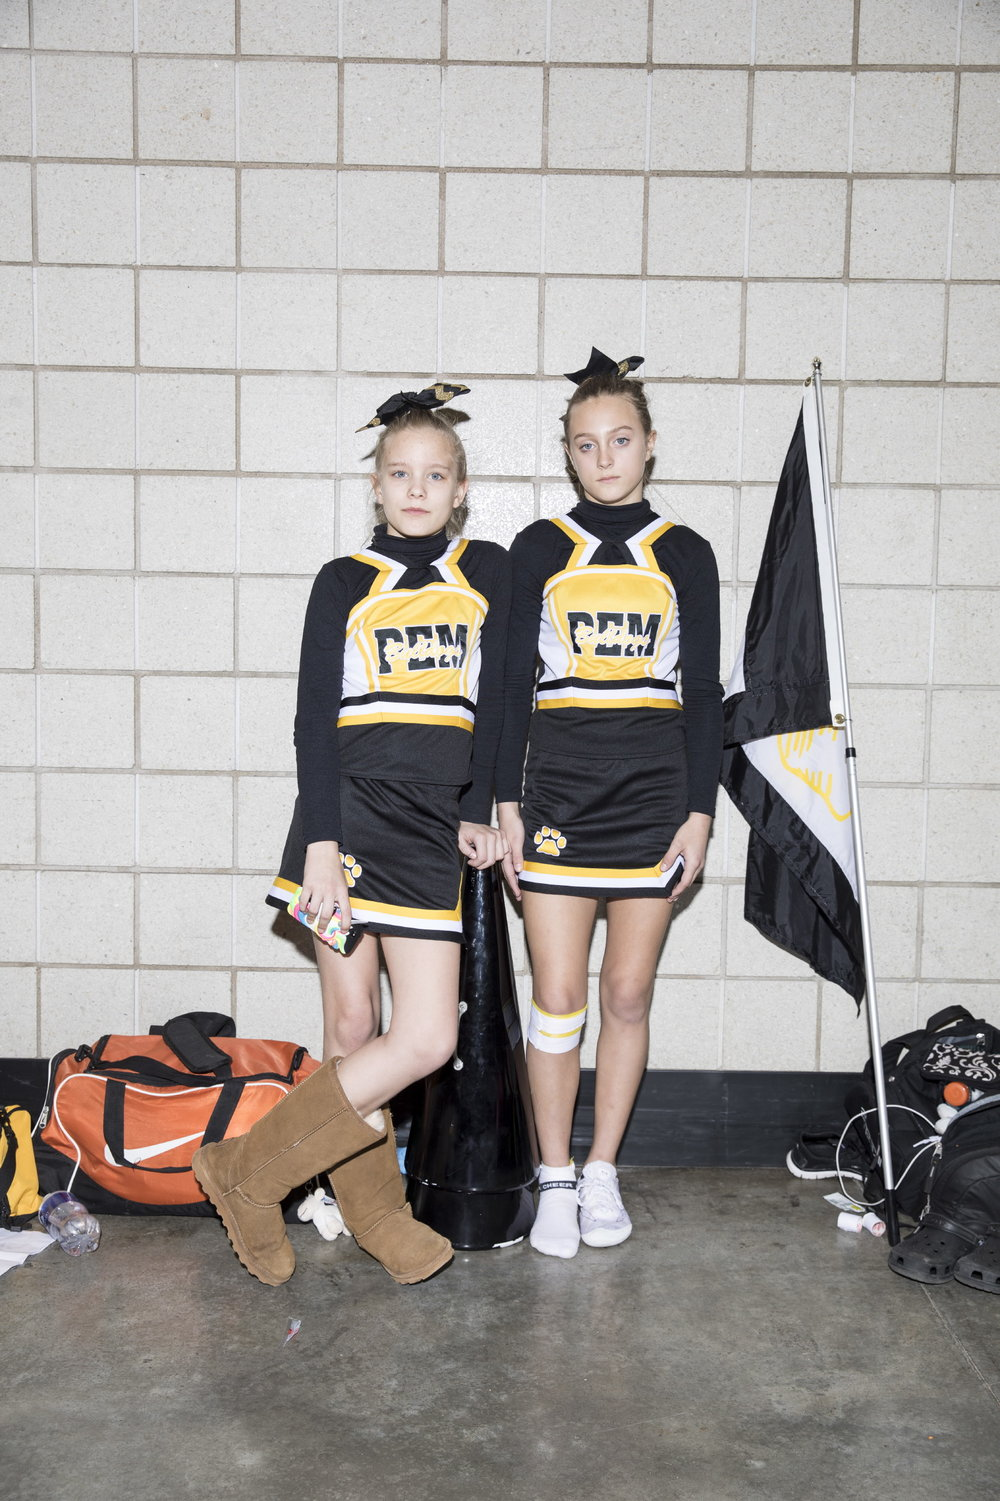 170128_Cheerleading_000402T.JPG